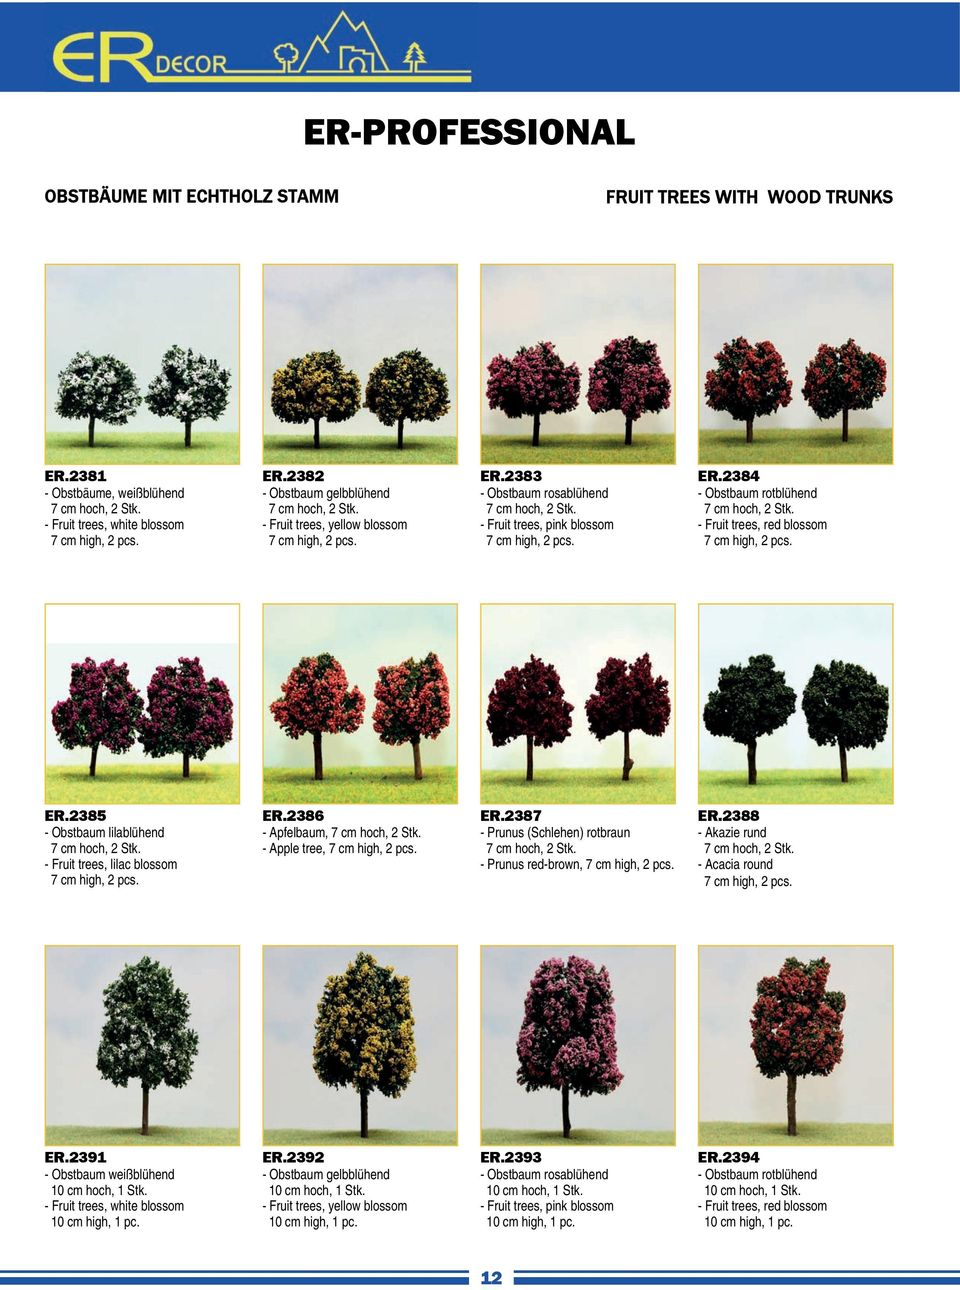 - Fruit trees, red blossom 7 cm high, 2 pcs. ER.2385 - Obstbaum lilablühend 7 cm hoch, 2 Stk. - Fruit trees, lilac blossom 7 cm high, 2 pcs. ER.2386 - Apfelbaum, 7 cm hoch, 2 Stk.